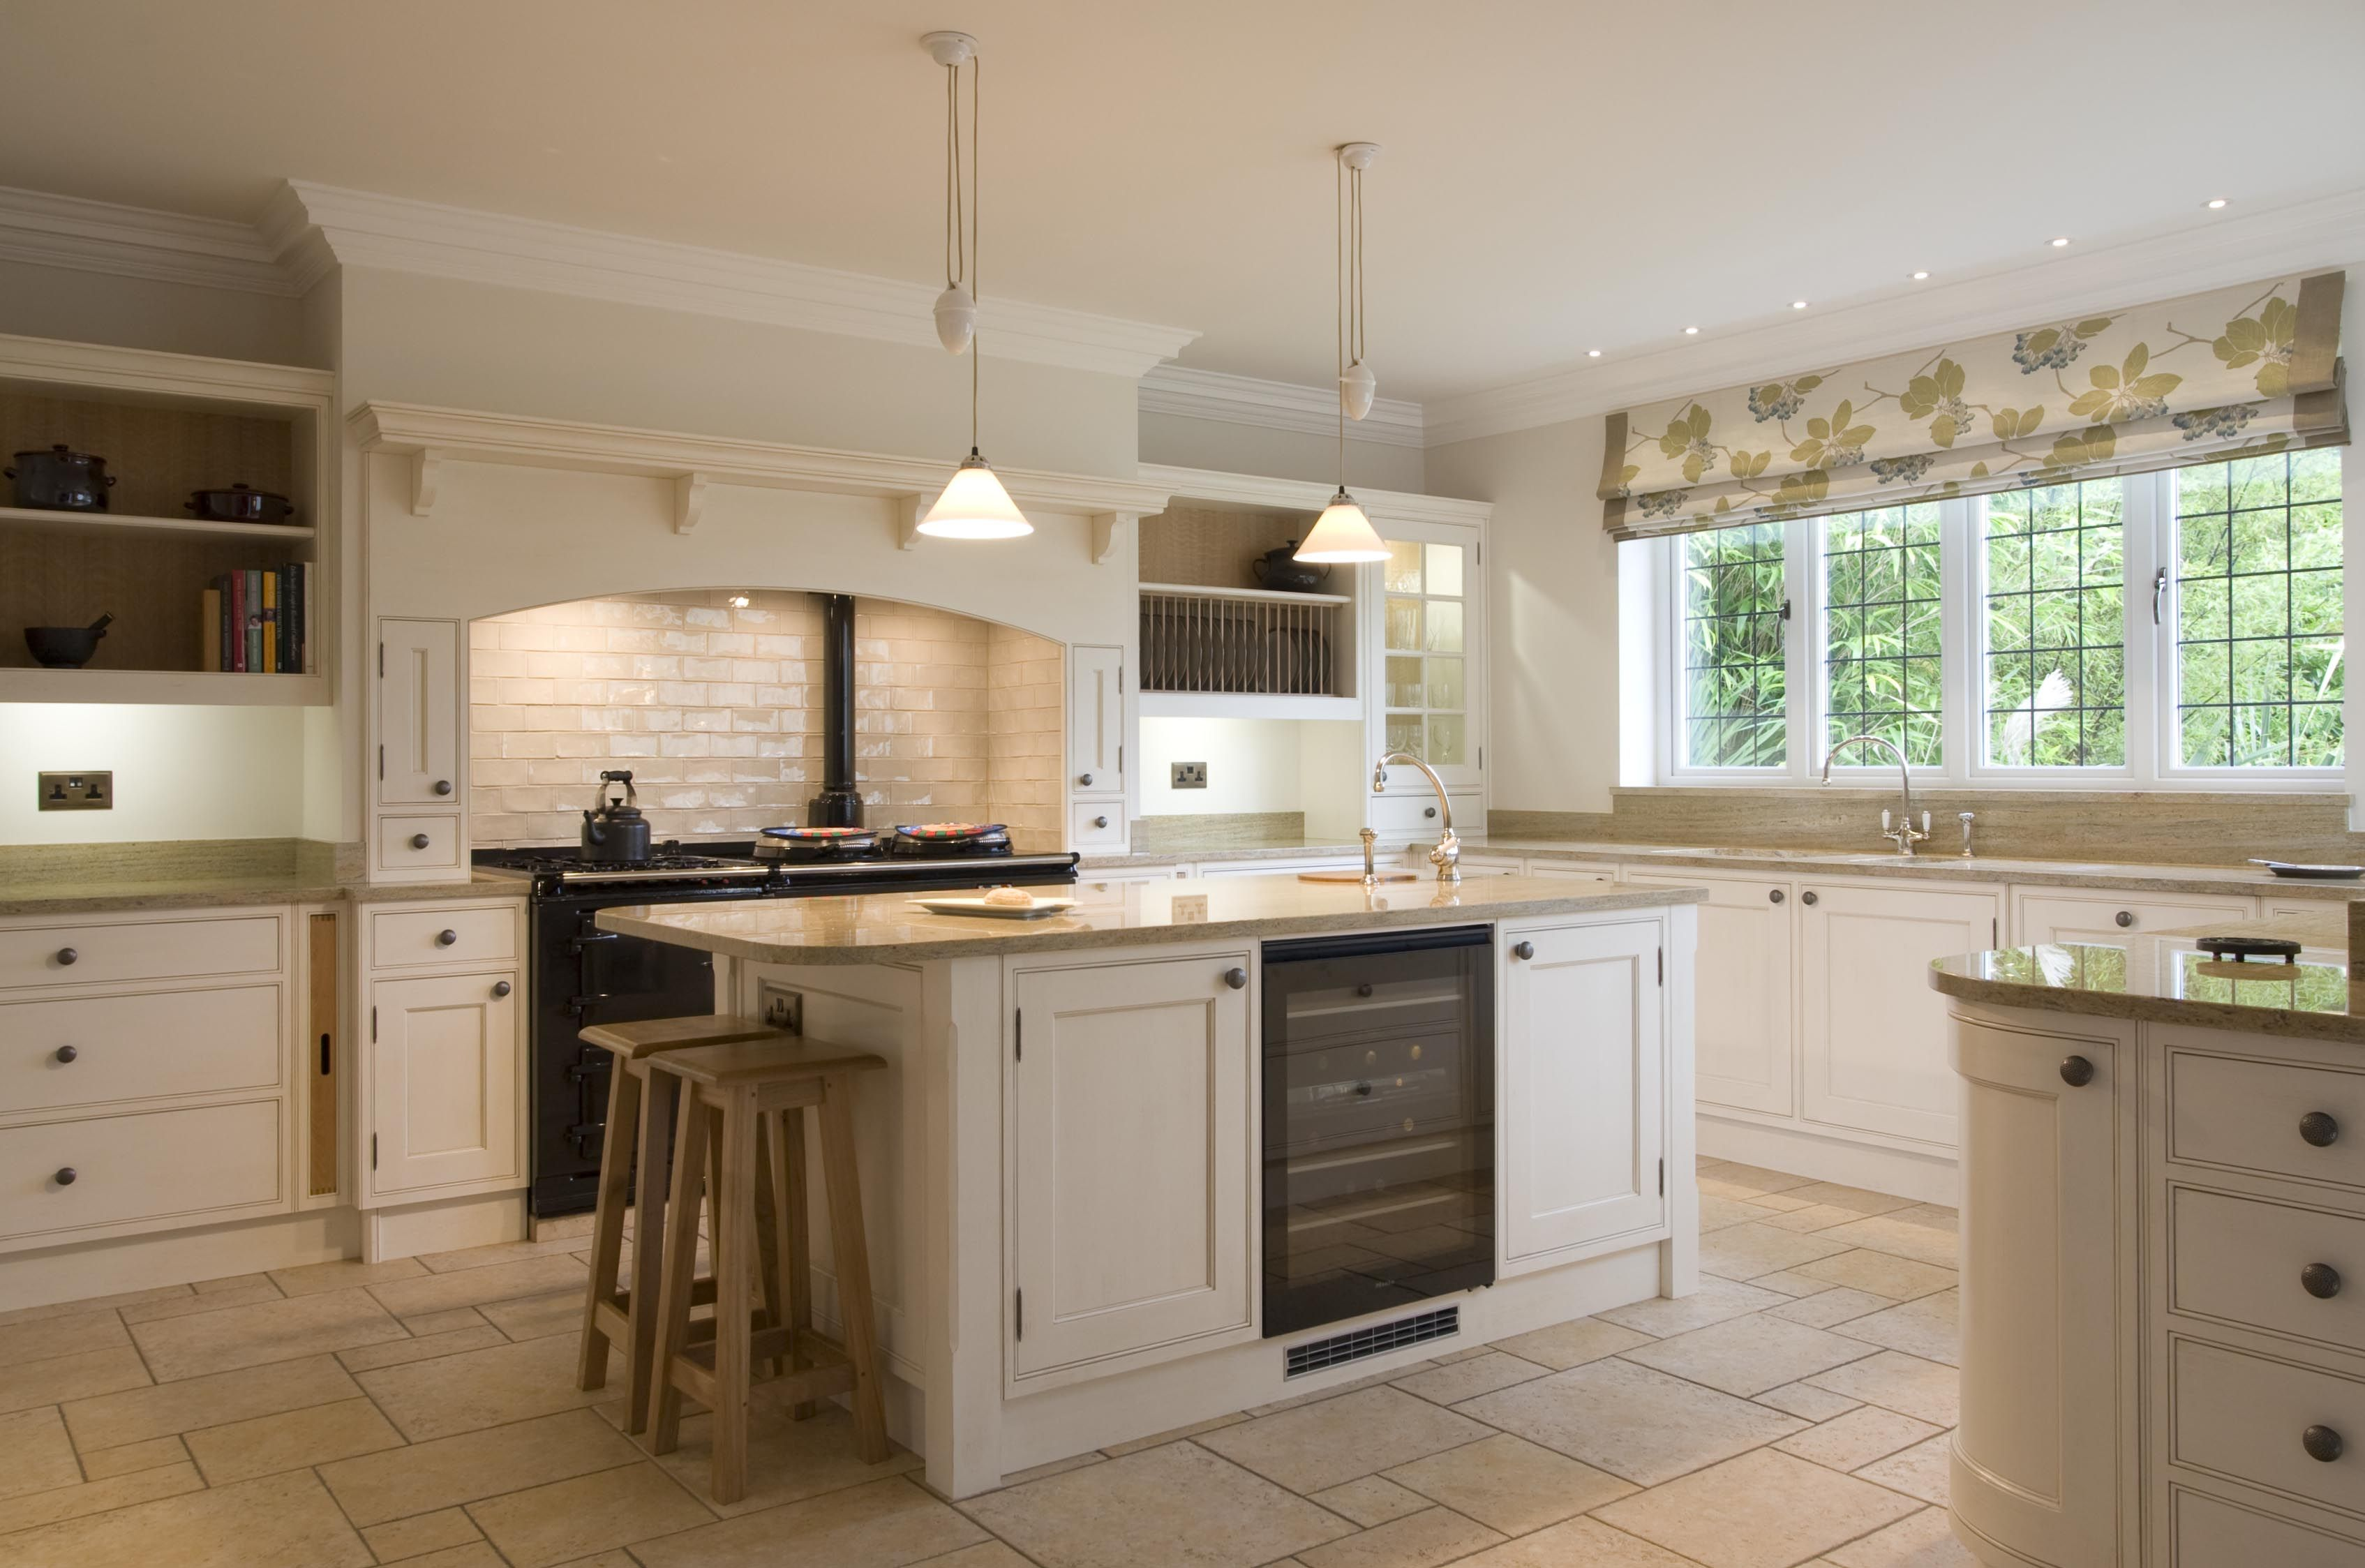 Superior Elegant Shaker Style Kitchen By Design Matters